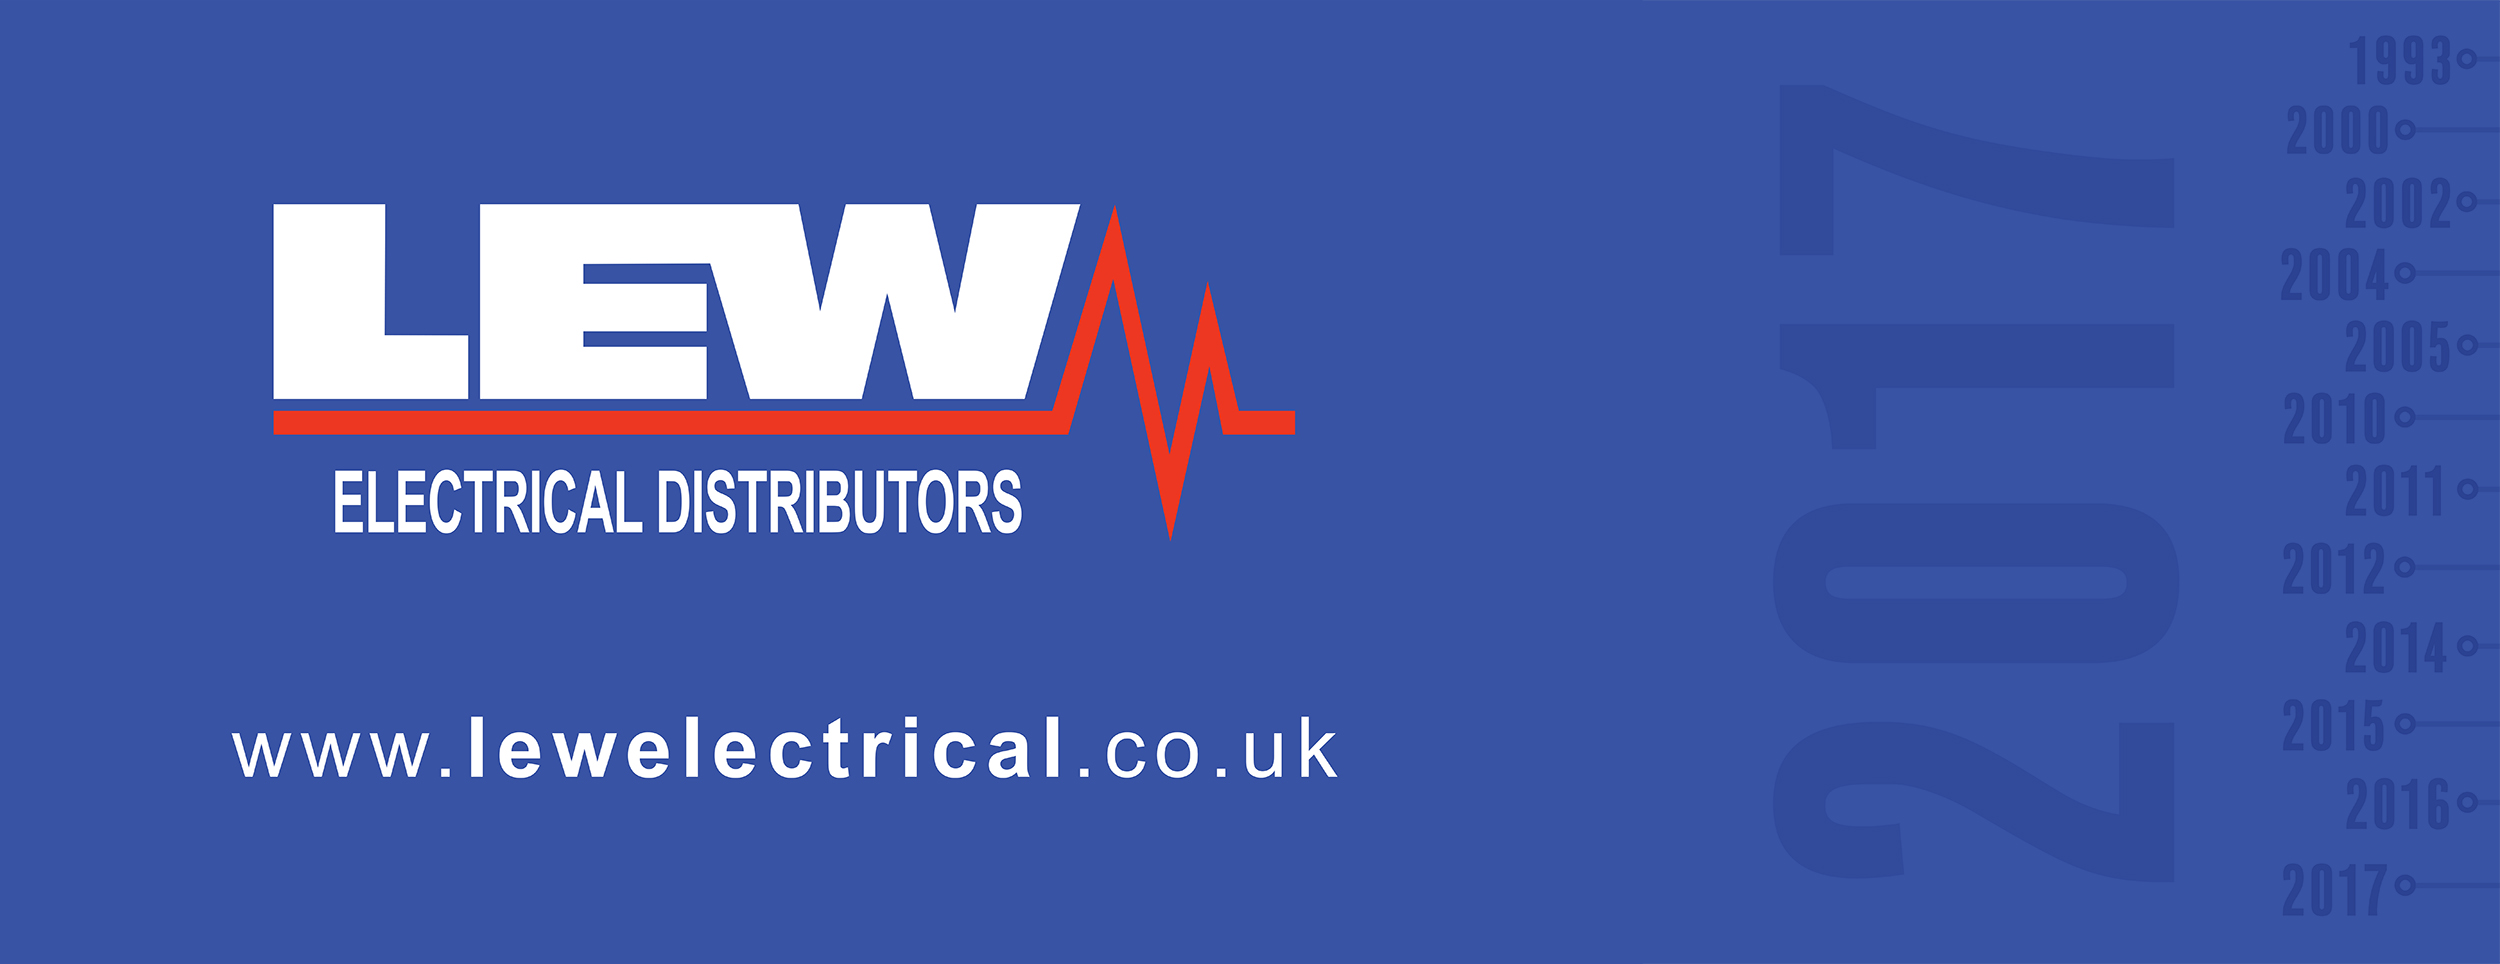 NEWS - Our Journey the Dawn Of a New Era - LEW Electrical Distributors a4a5ff773c7